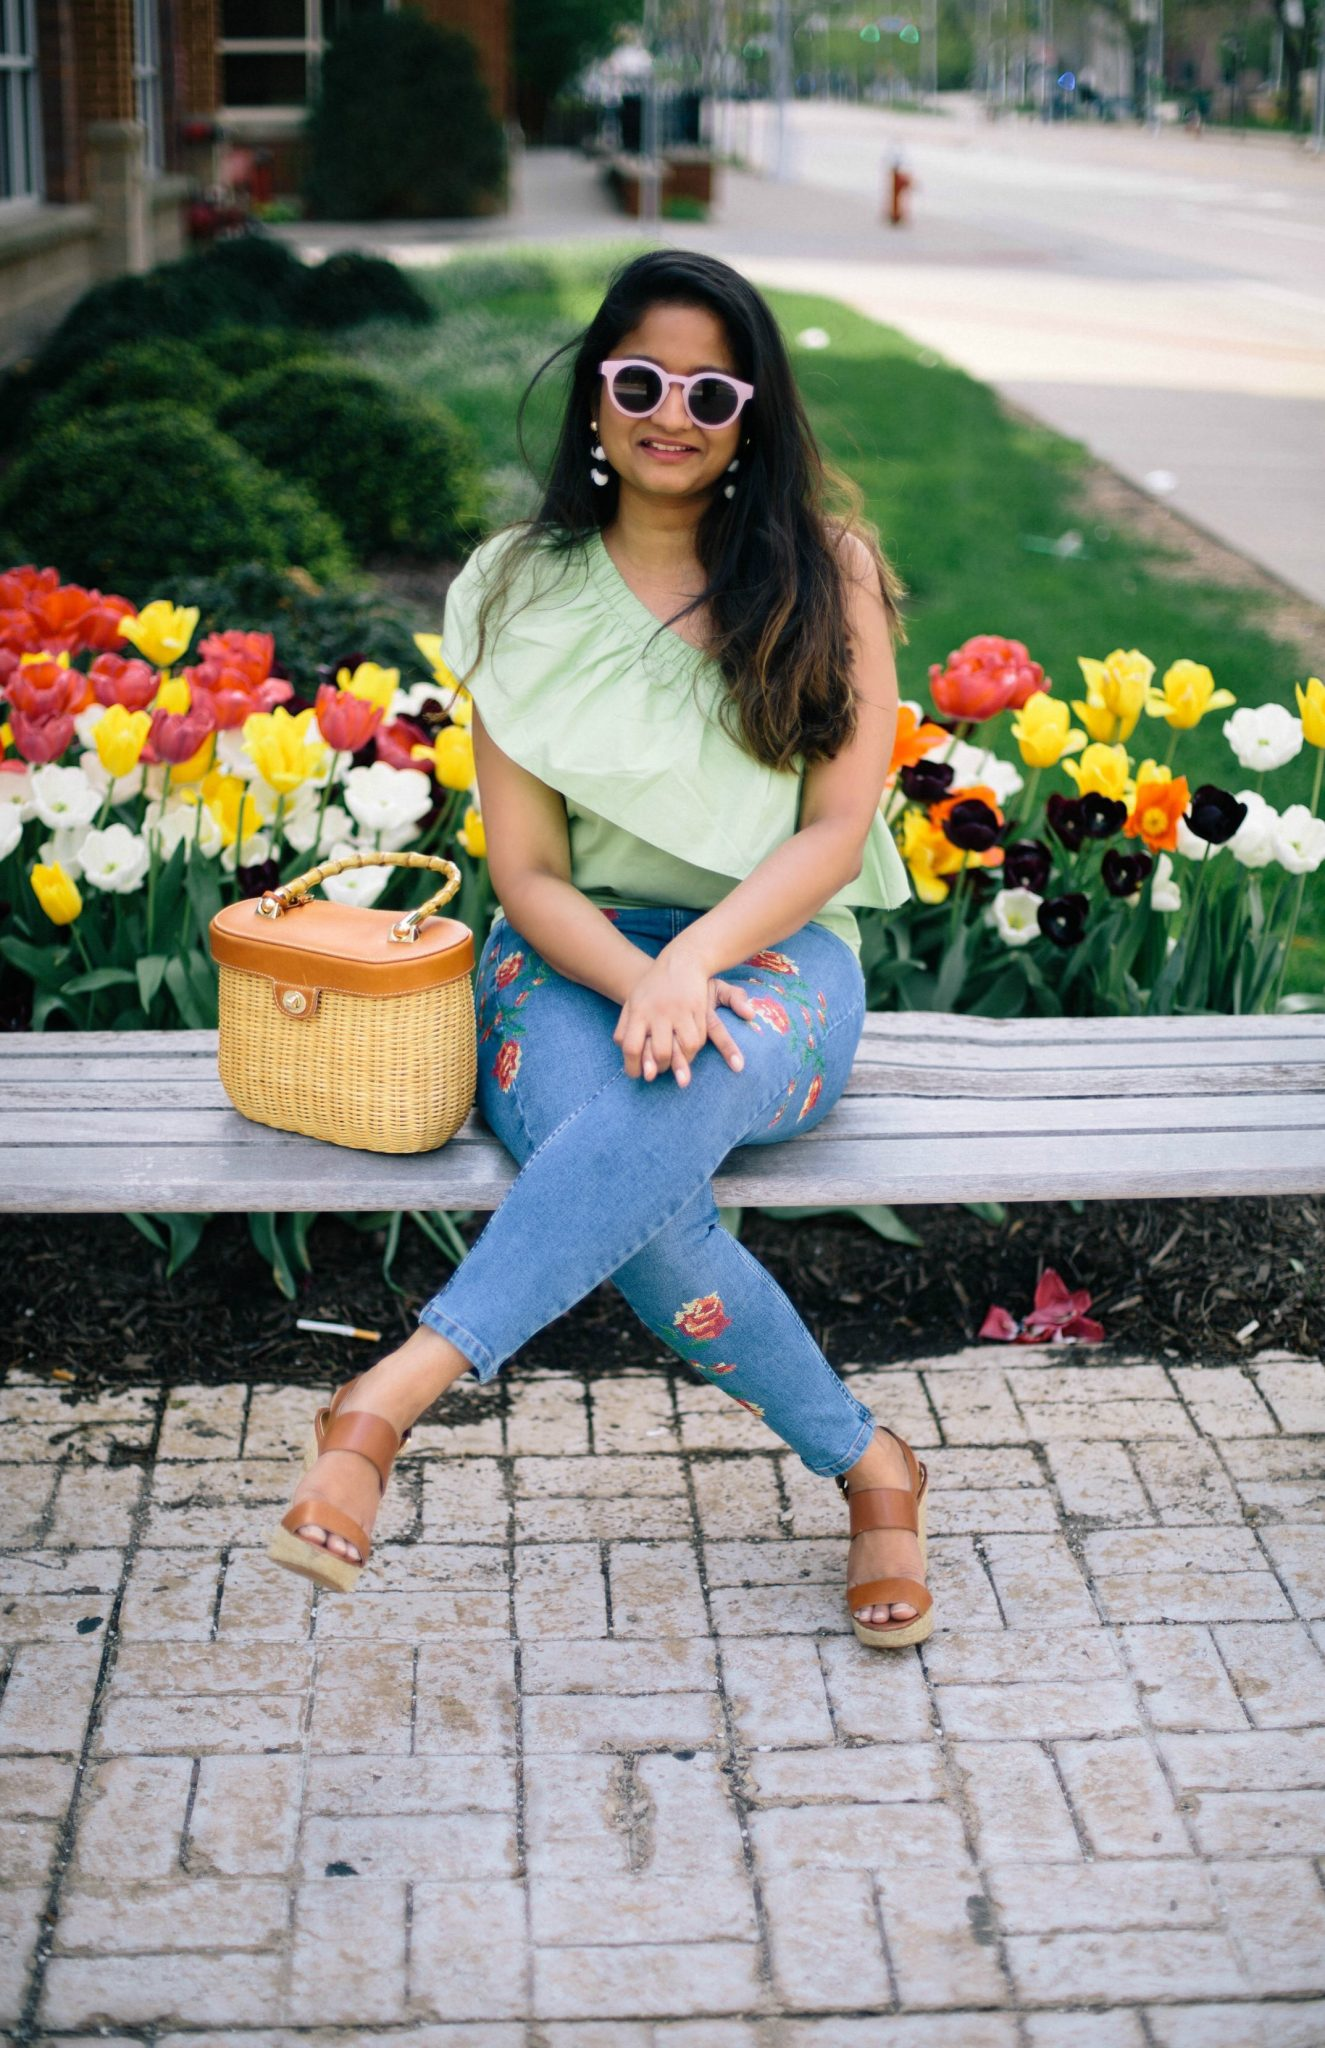 Asos-one-shoulder-top-in-cotton - How To Style a One Shoulder Top featured by popular Ohio modest fashion blogger, Dreaming Loud